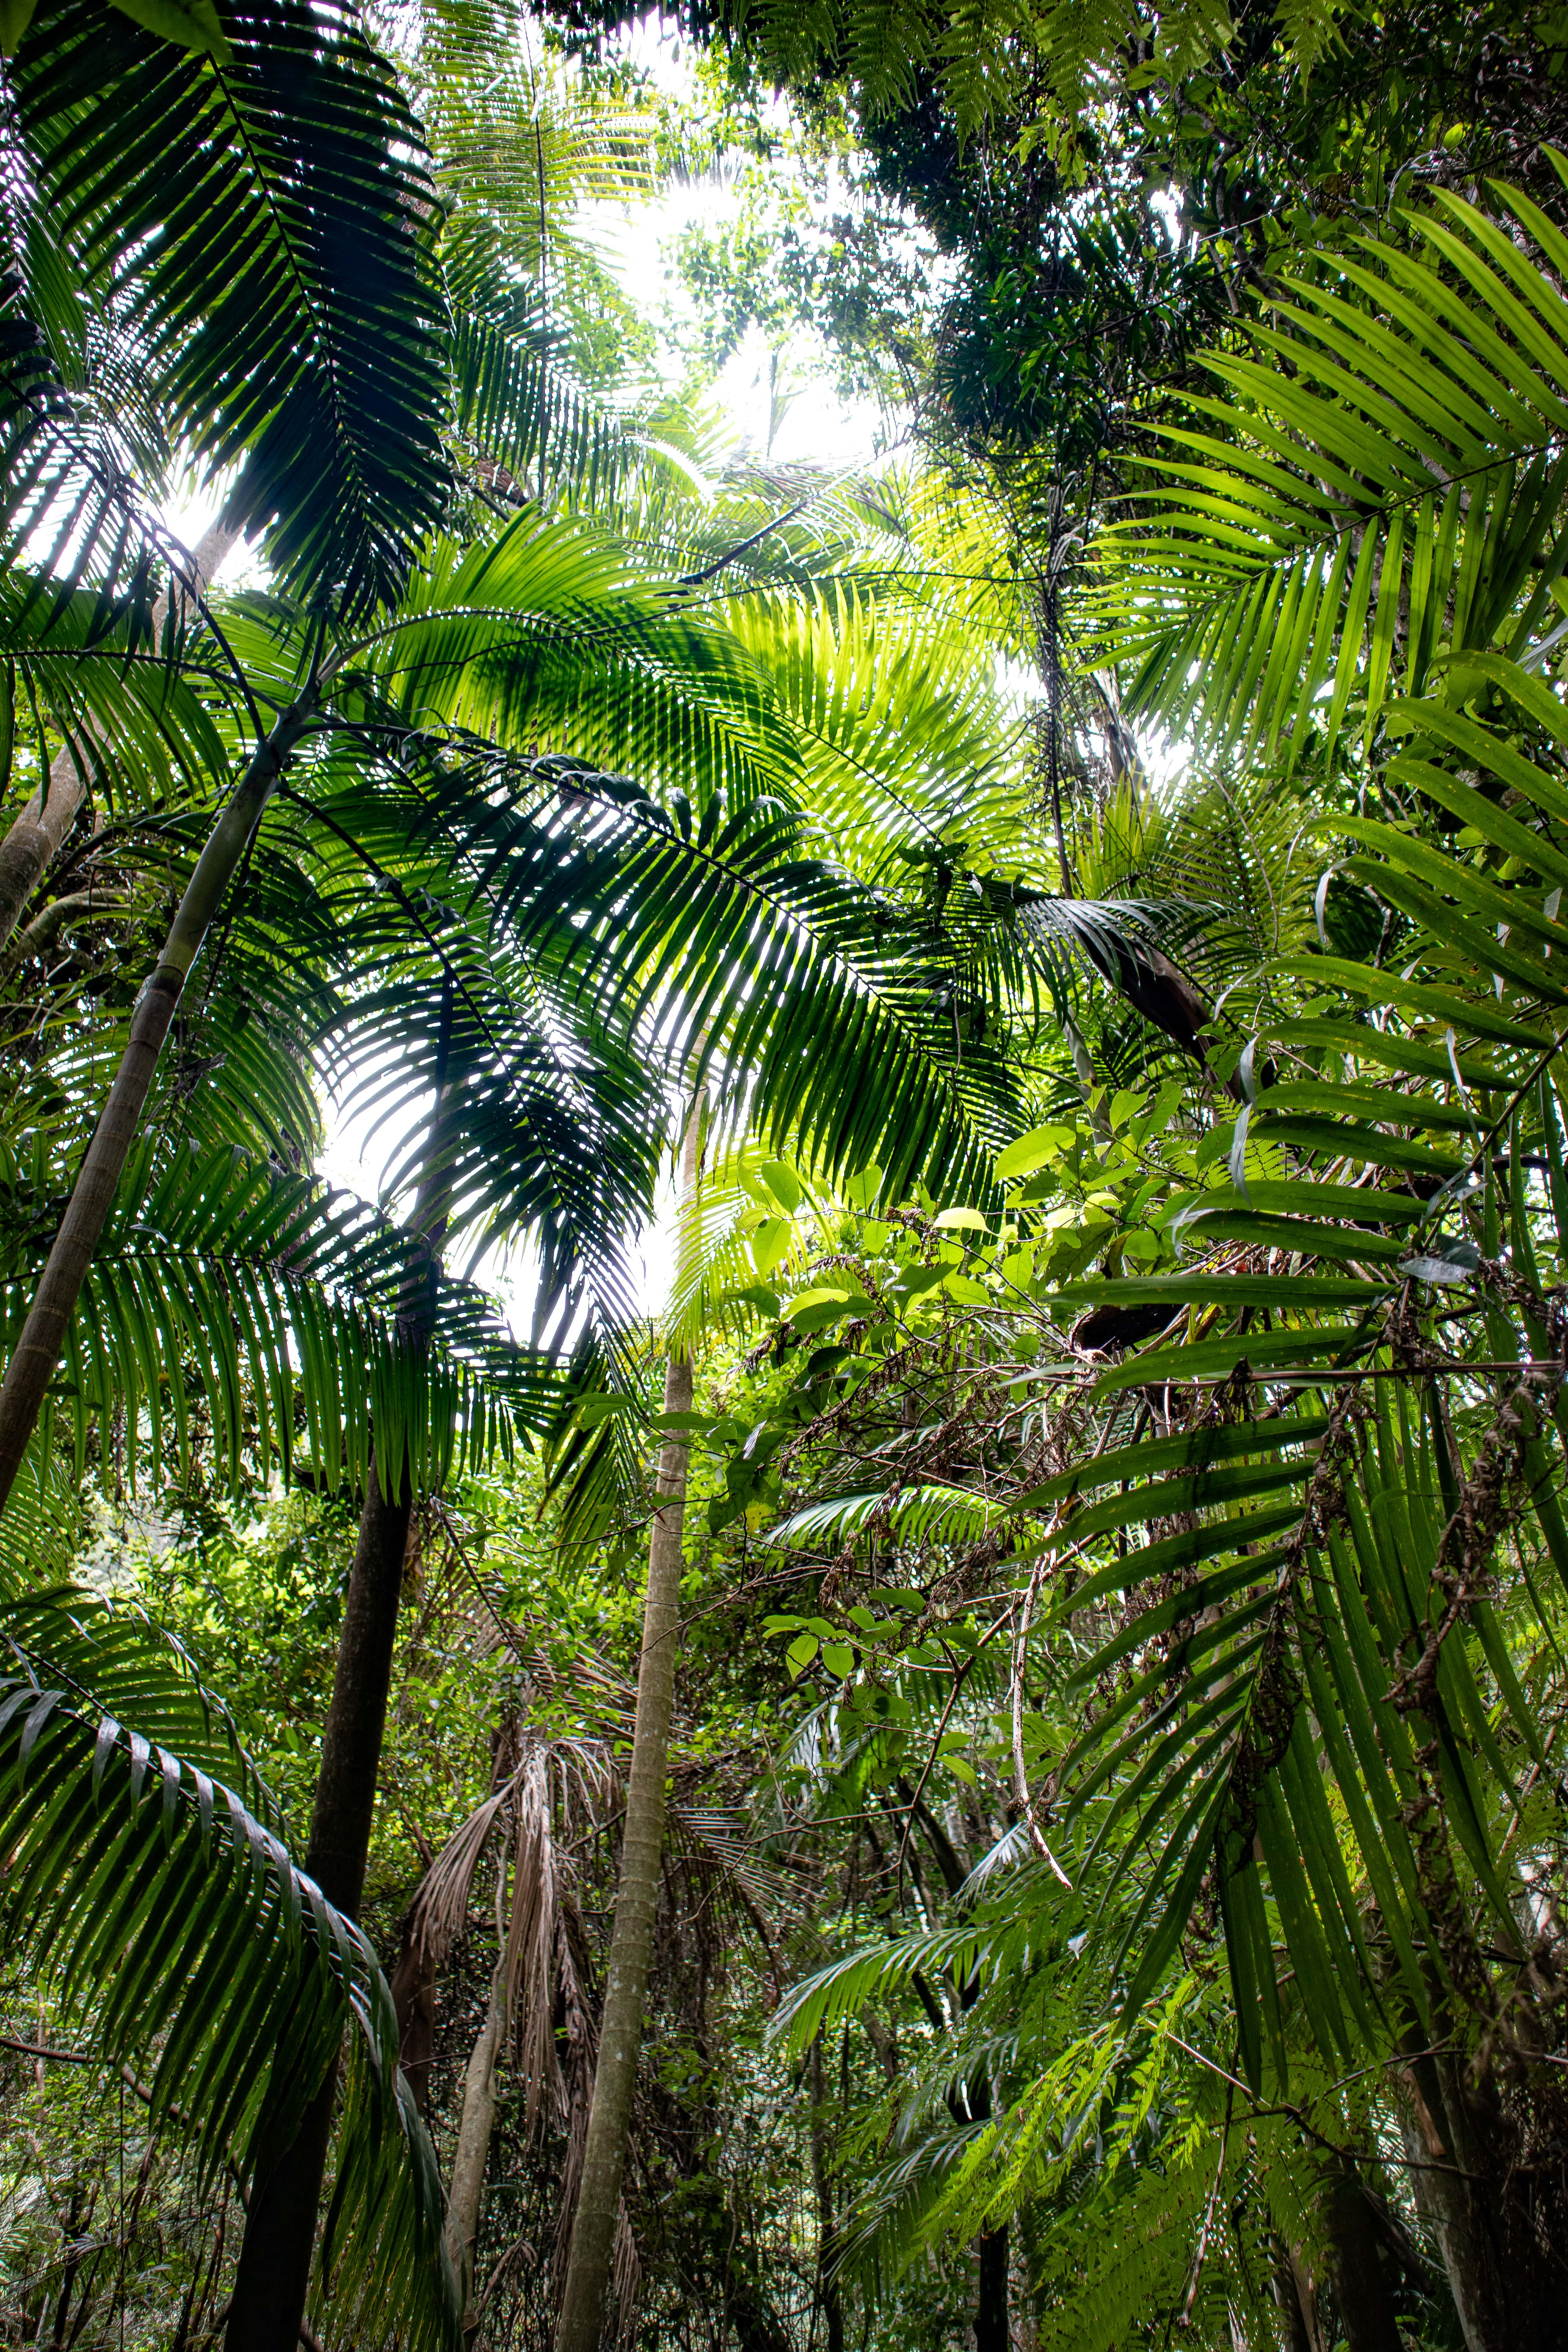 Green palm trees in rainforest